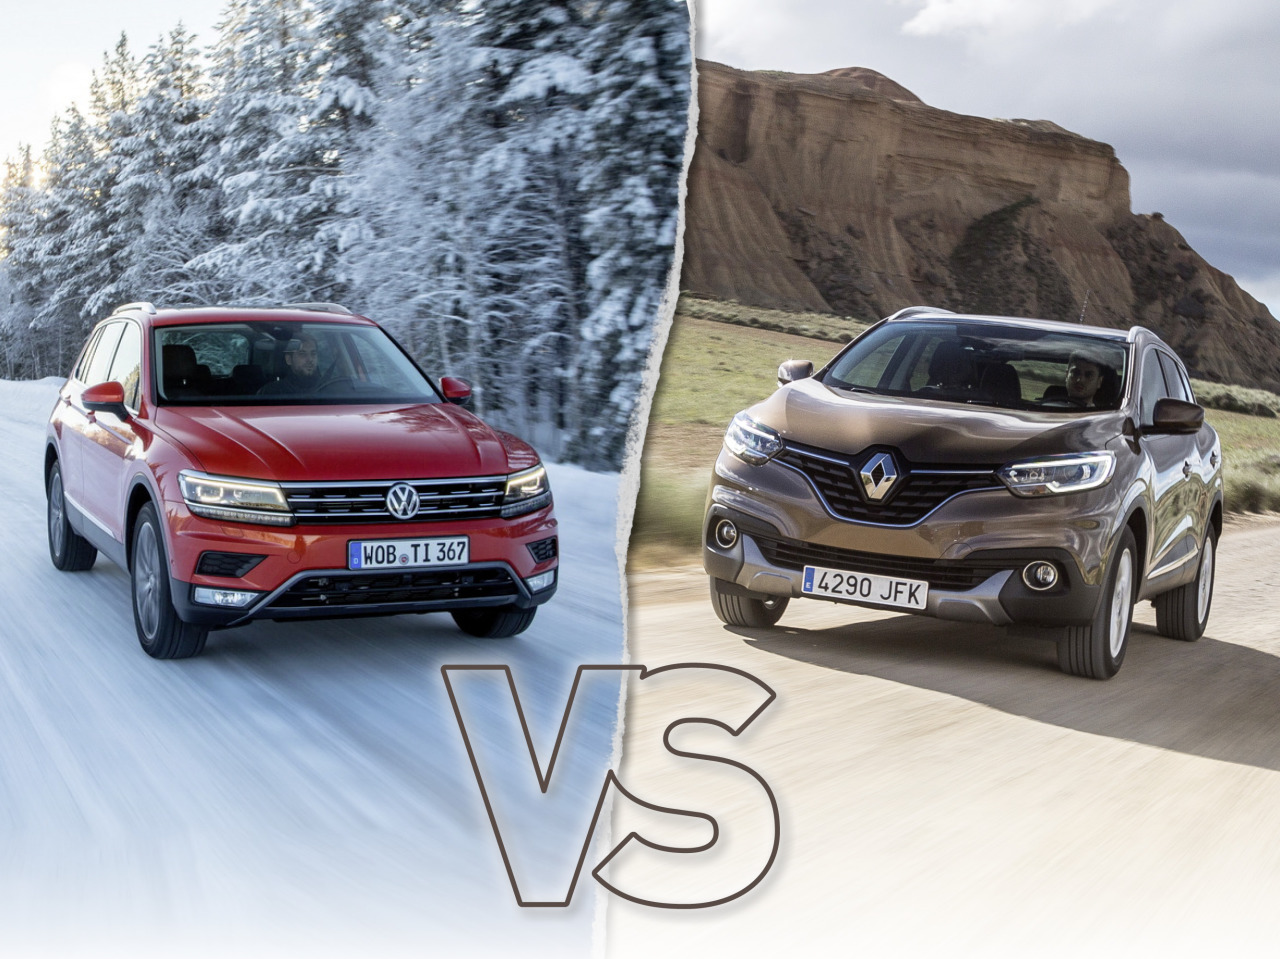 volkswagen tiguan 2016 vs renault kadjar le match des prix l 39 argus. Black Bedroom Furniture Sets. Home Design Ideas